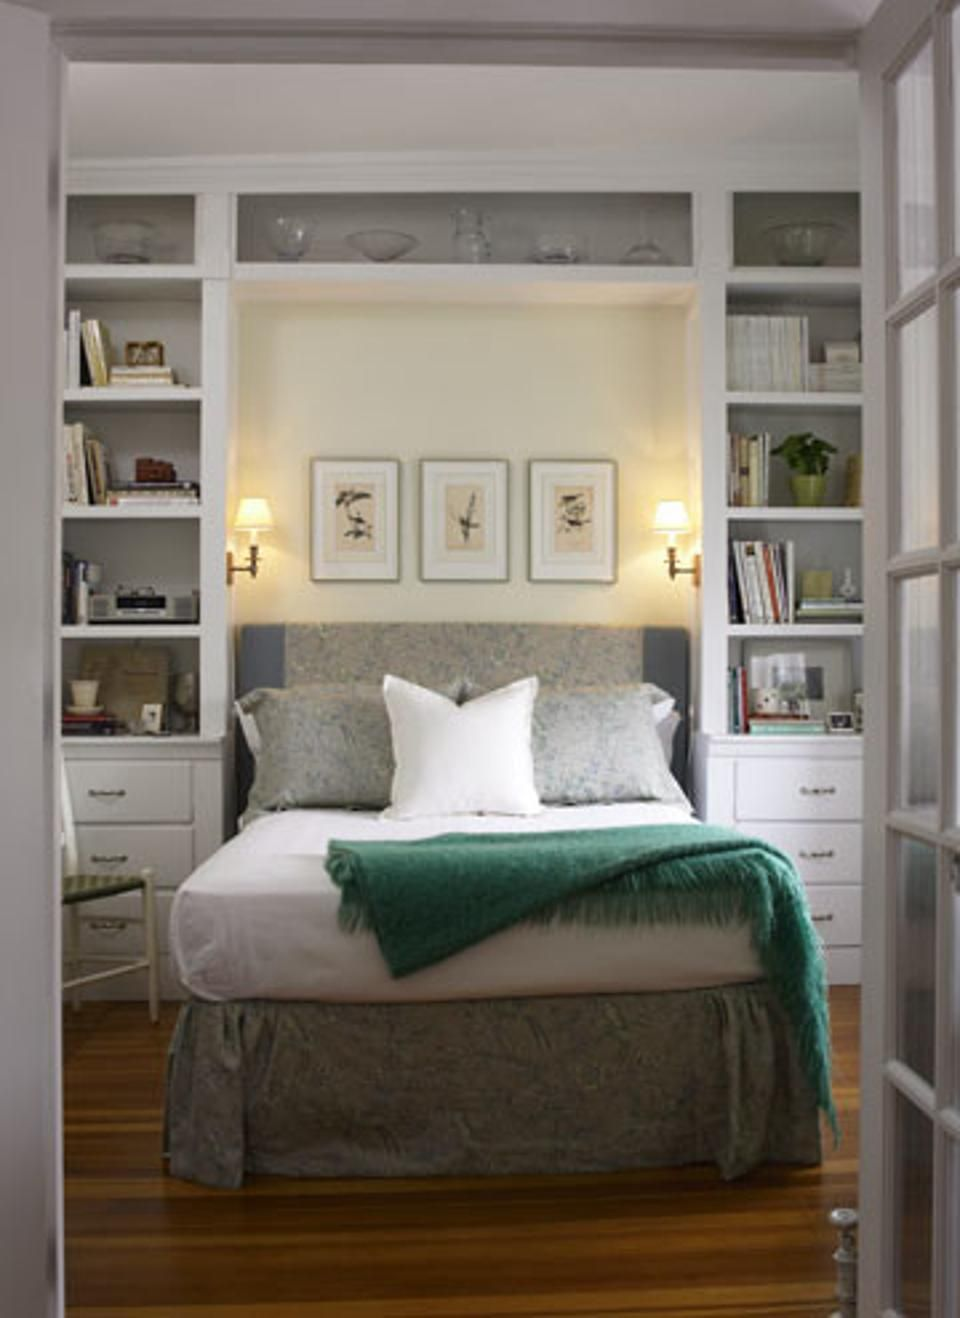 10 Tips To Make A Small Bedroom Look Great Compact